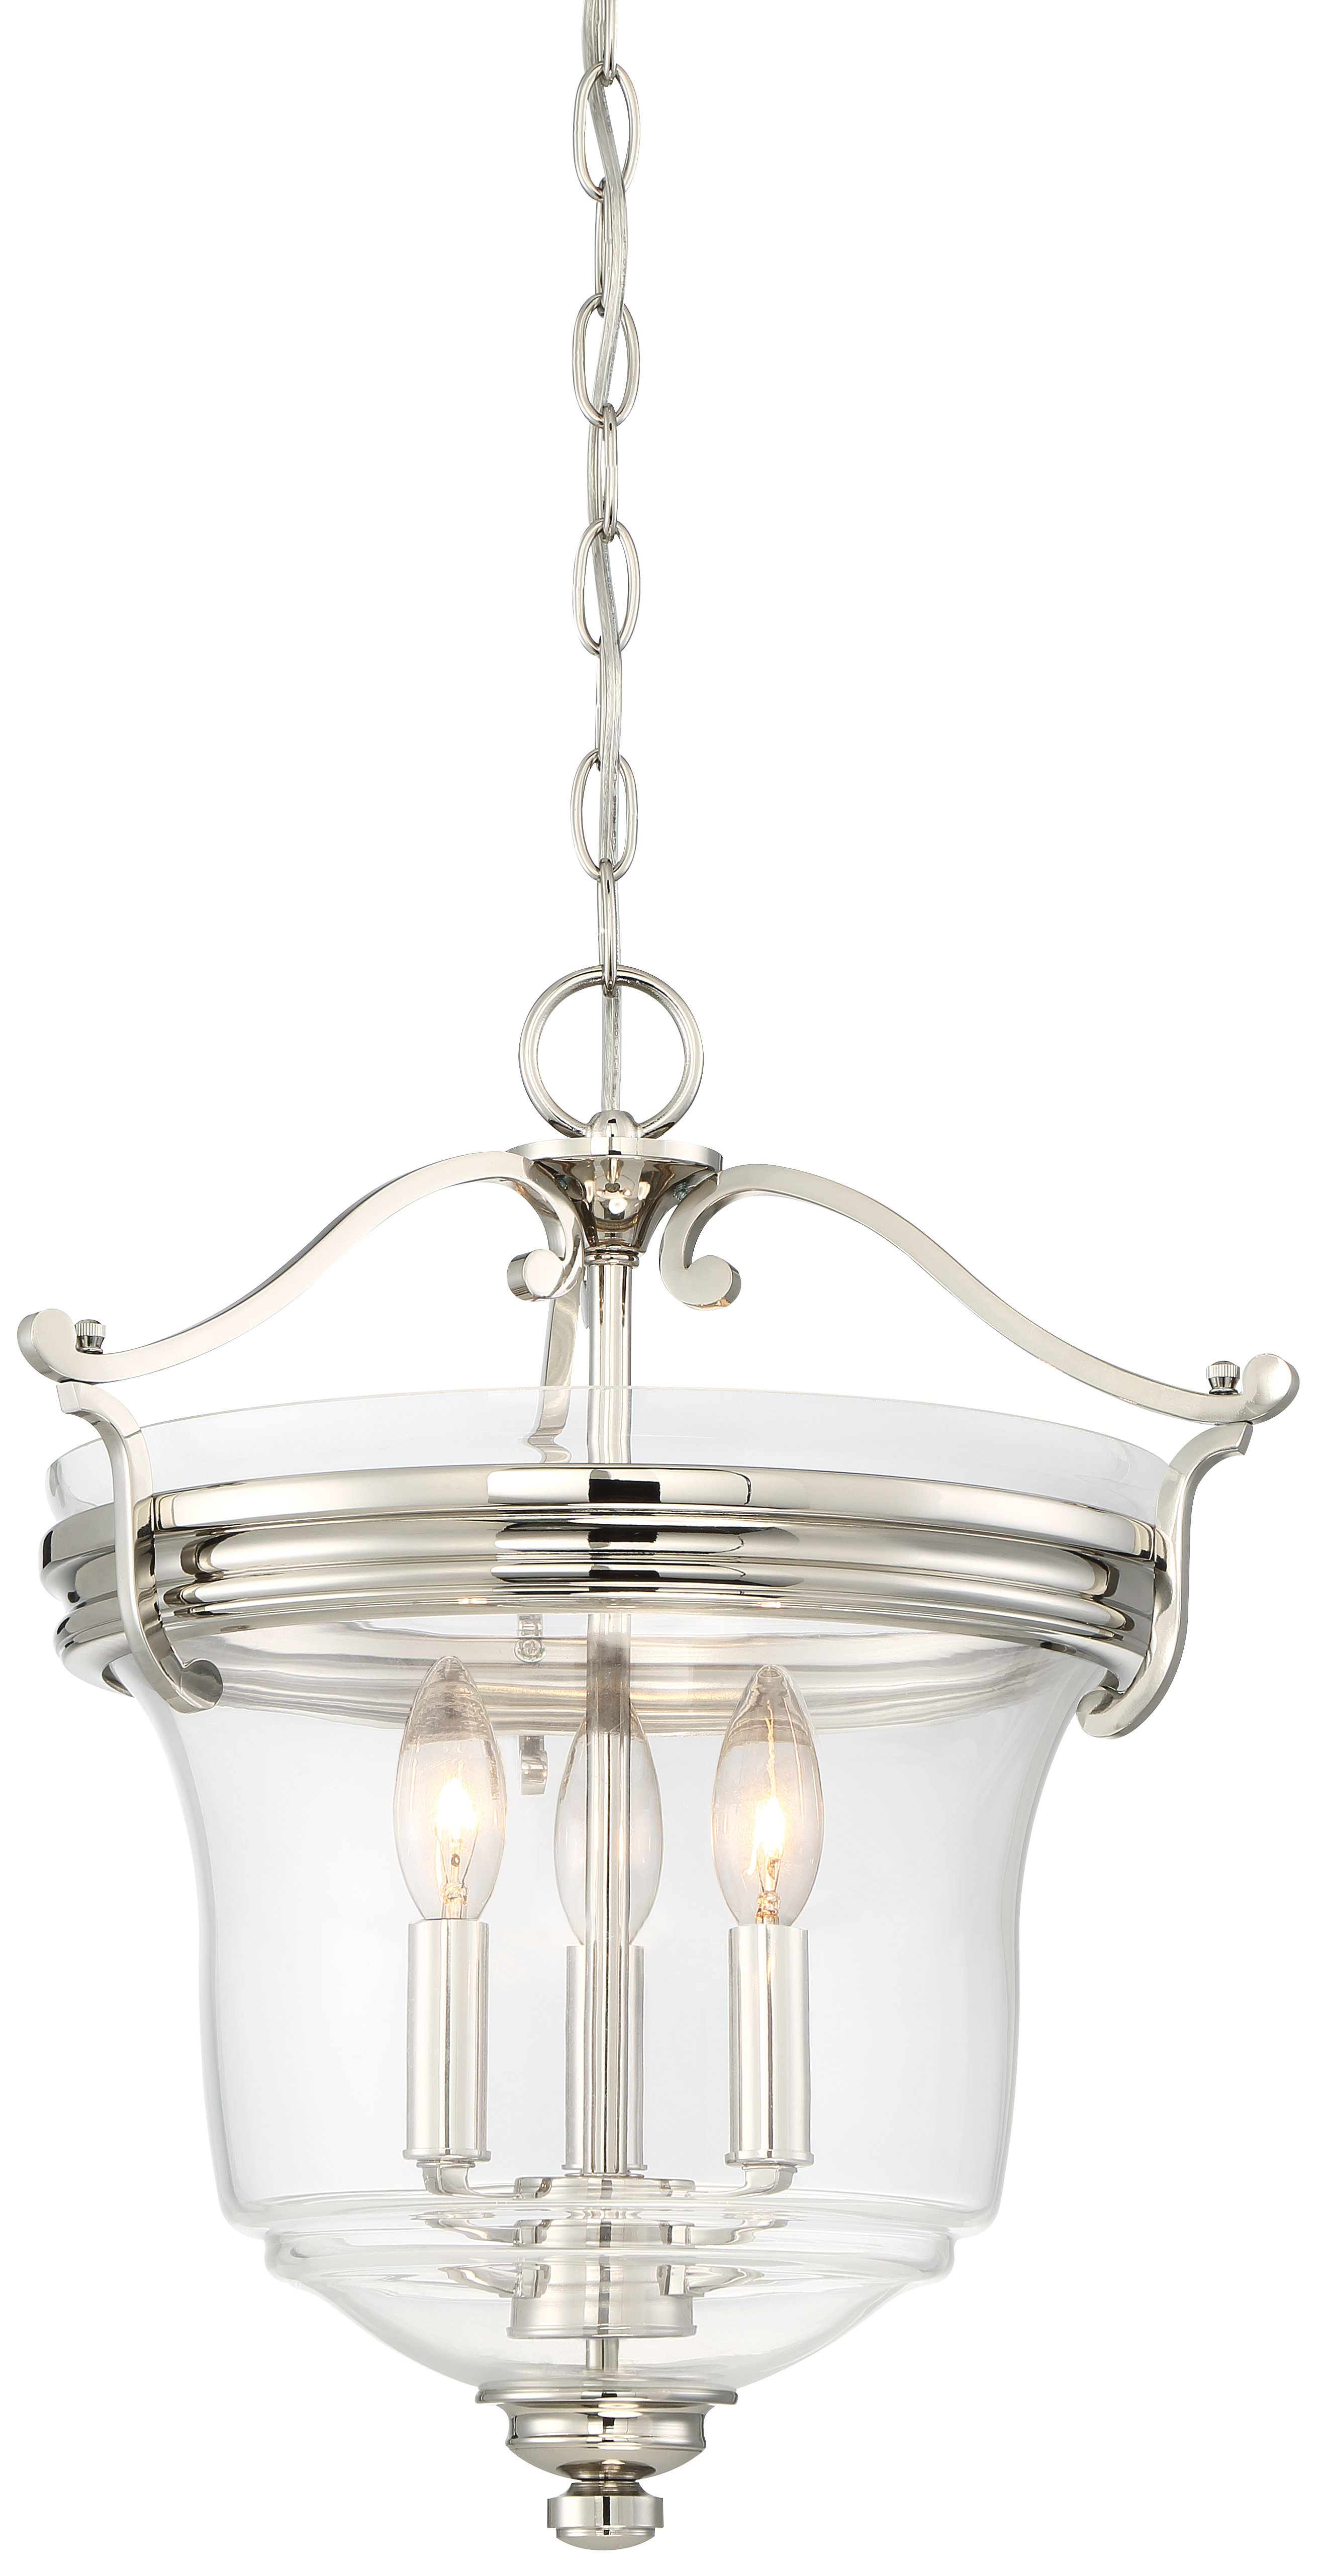 Ameche 3-Light Single Urn Pendant for 3-Light Single Urn Pendants (Image 5 of 30)